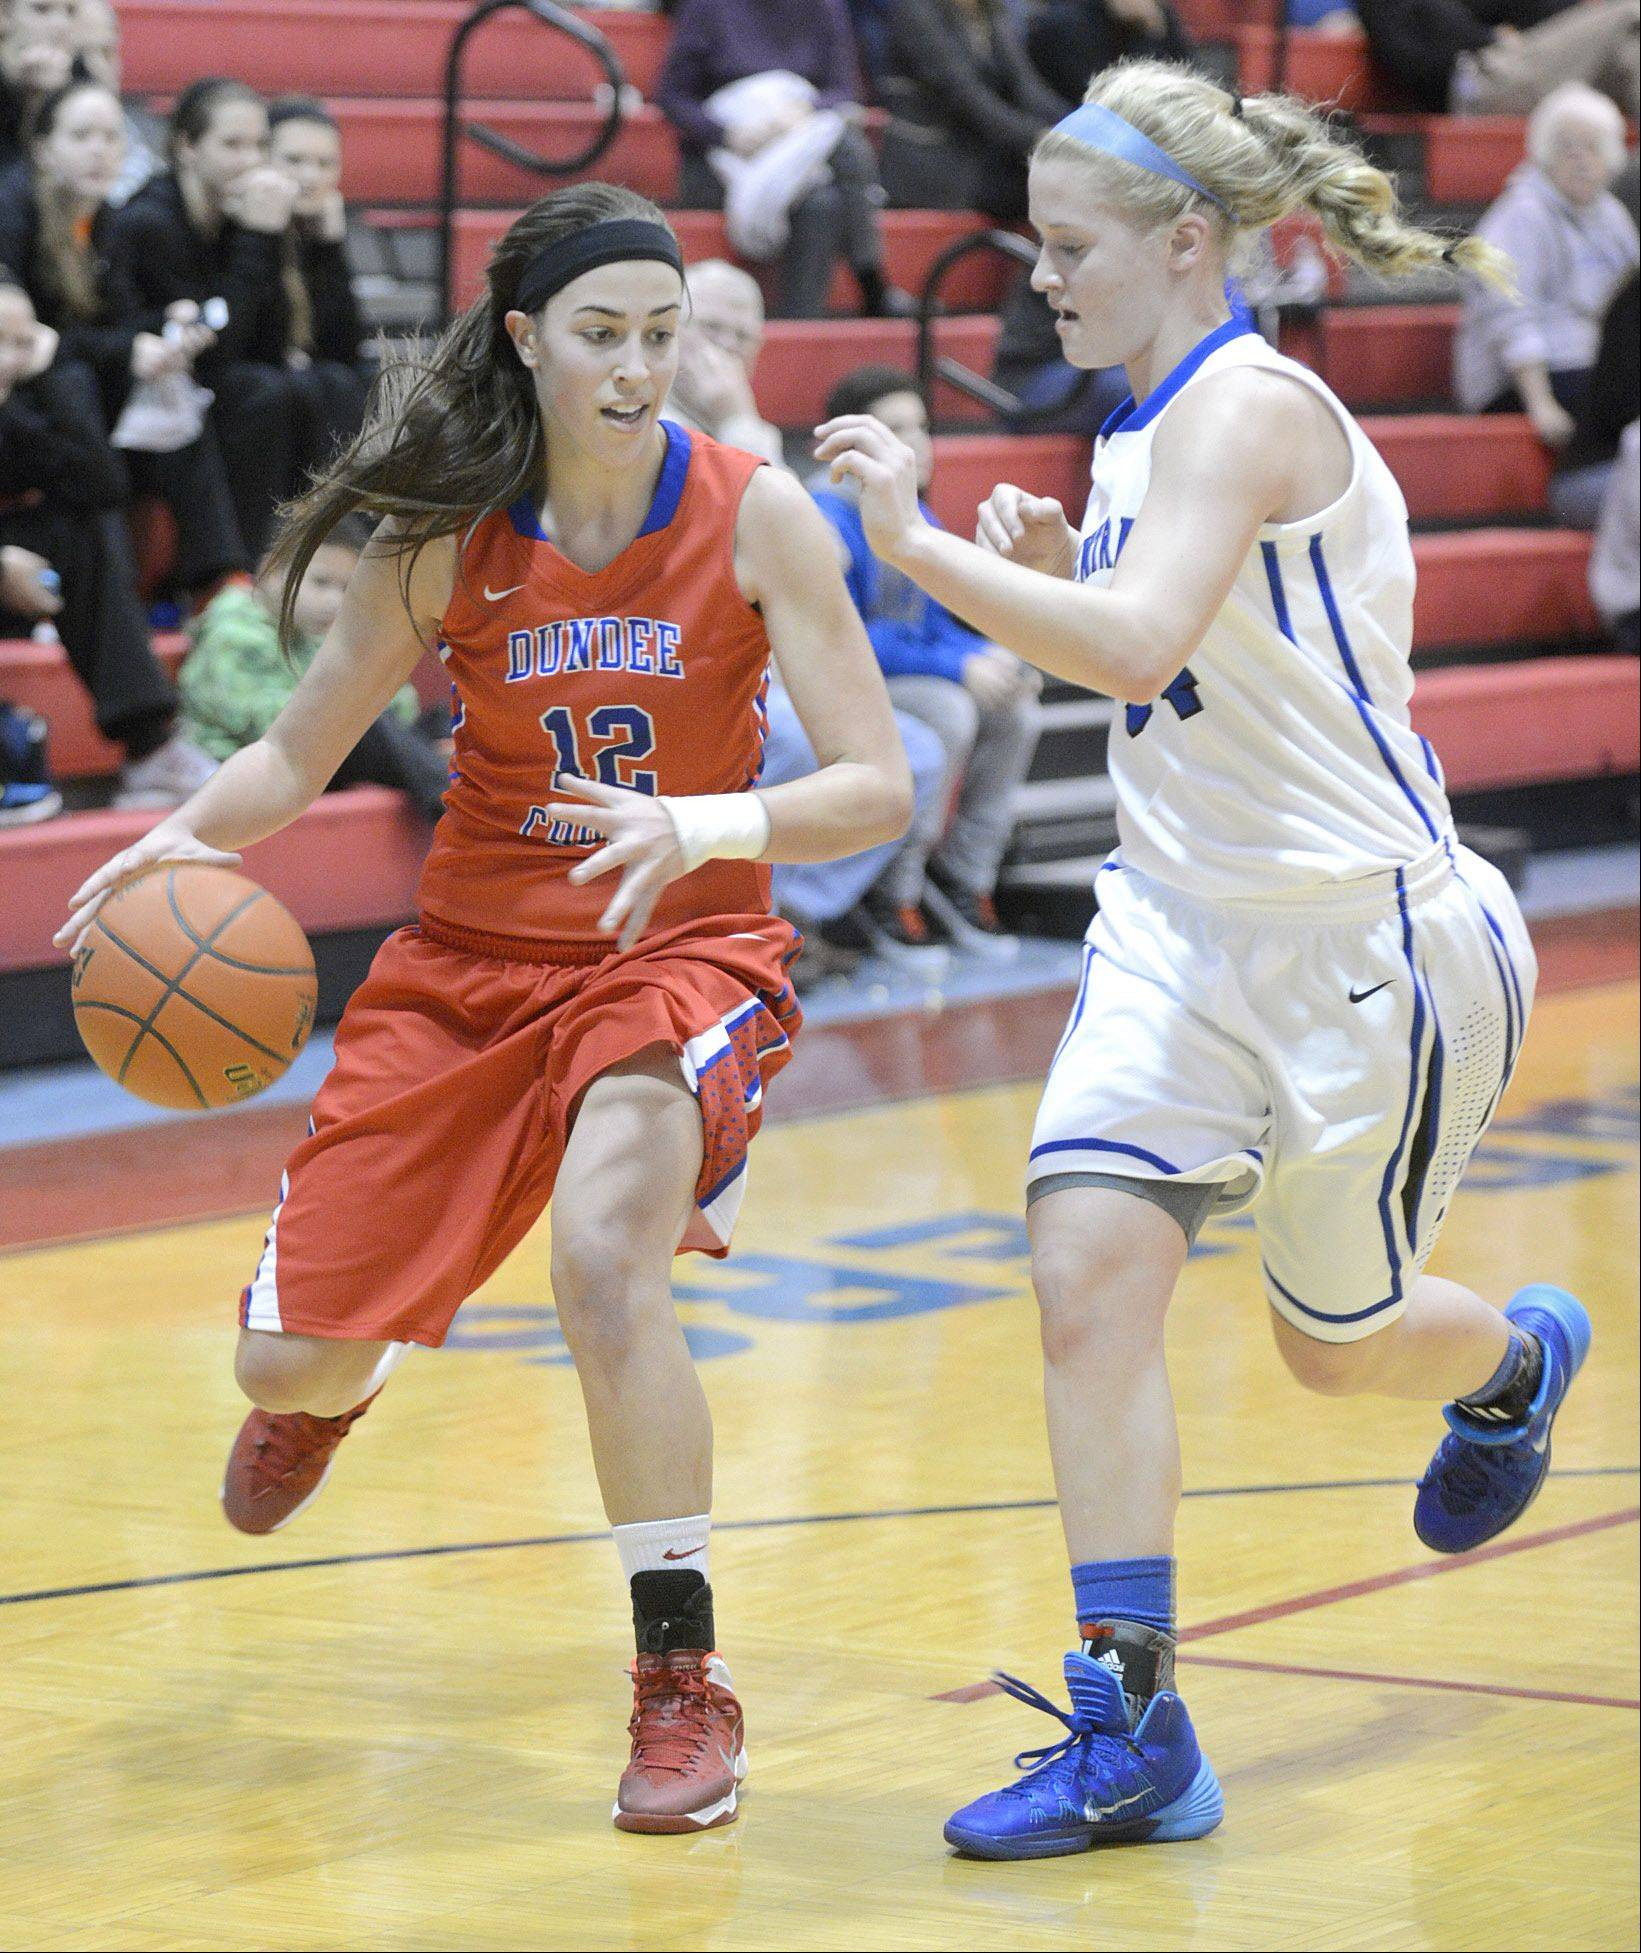 Dundee-Crown�s Lauren Lococo (12) looks to find a way around Burlington Central�s Sam Pryor during the Charger Classic at D-C.